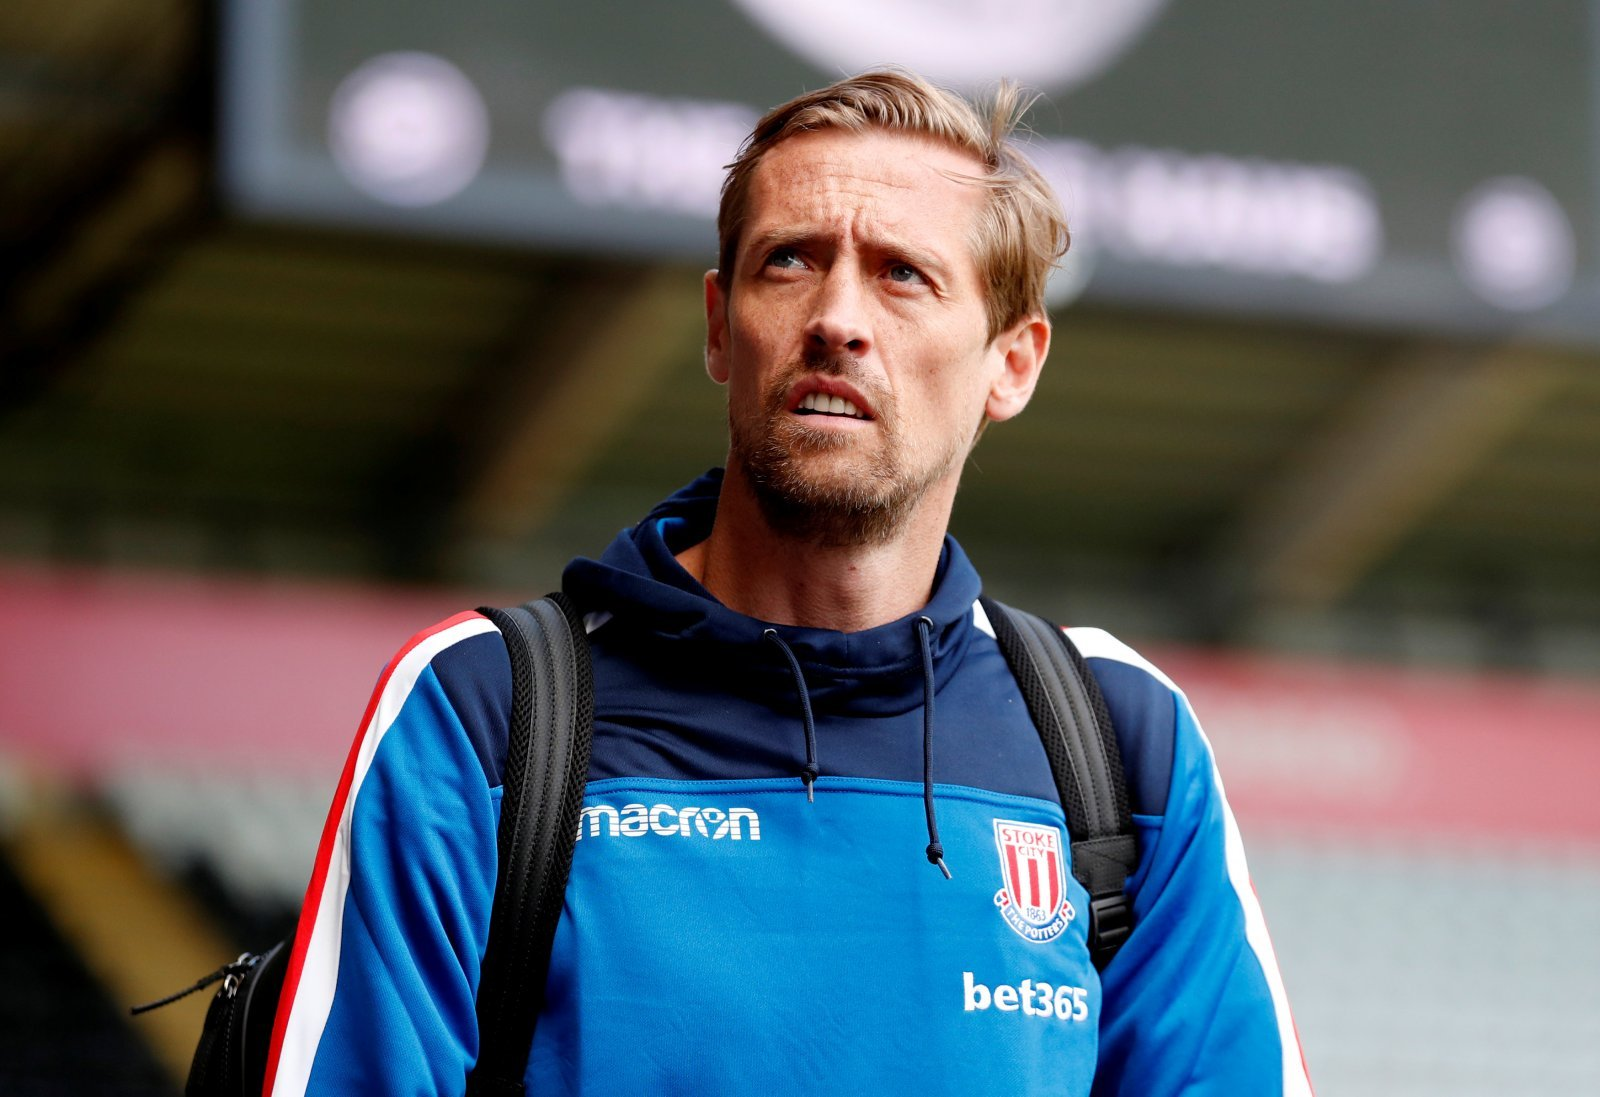 Peter Crouch should spend autumn of his career taking Rangers back to the top